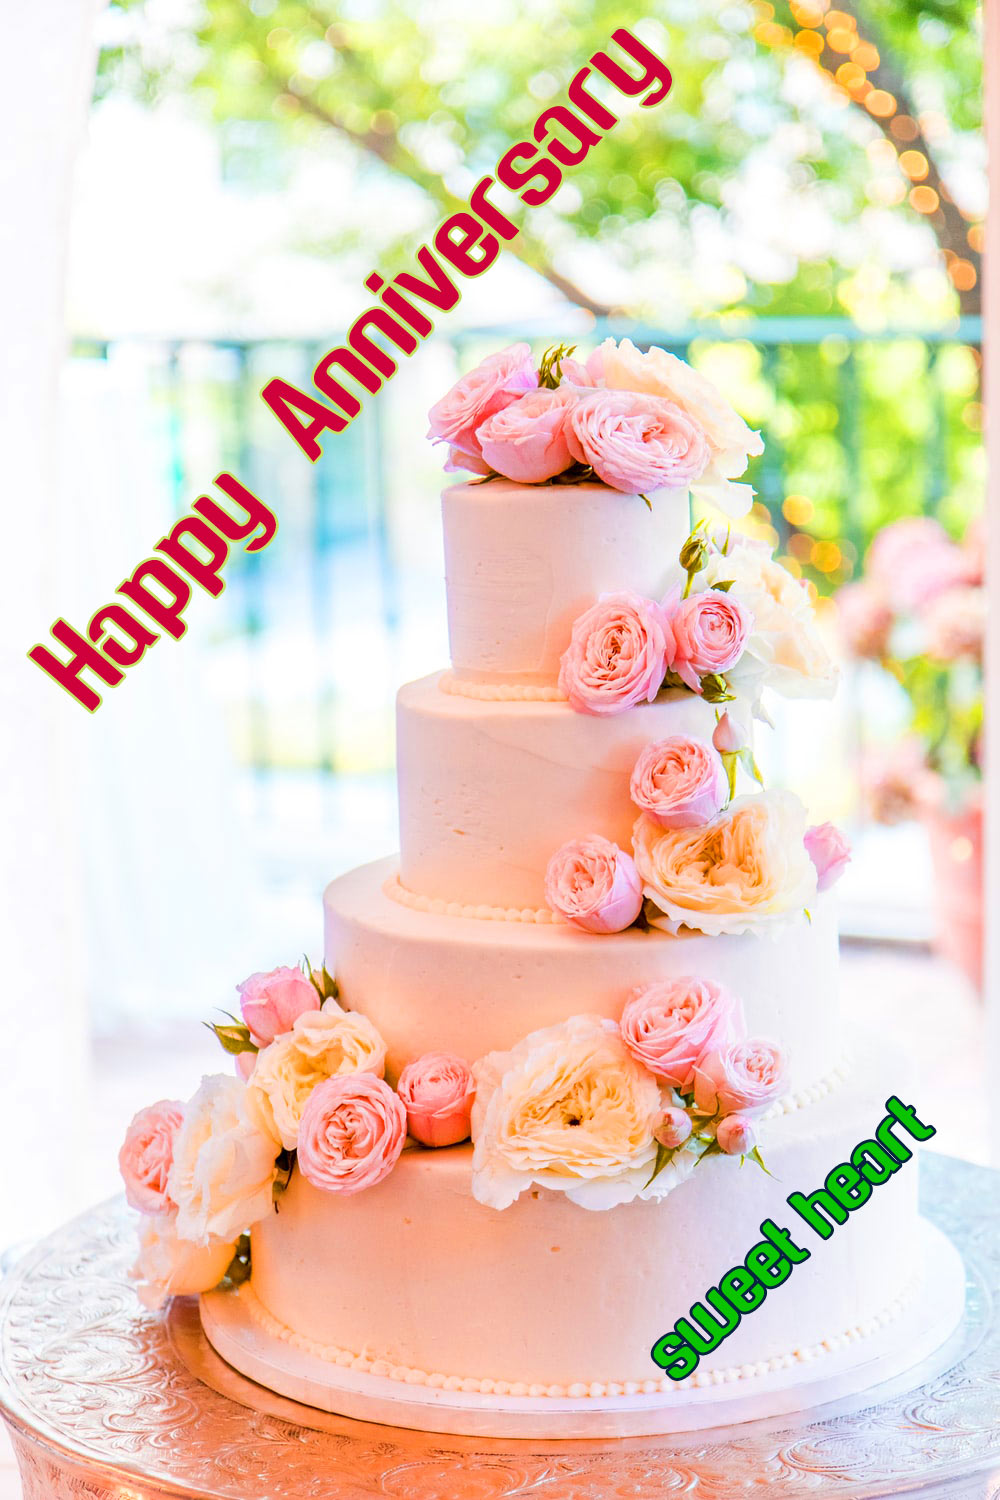 Happy Wedding Anniversary Pics Wallpaper photo